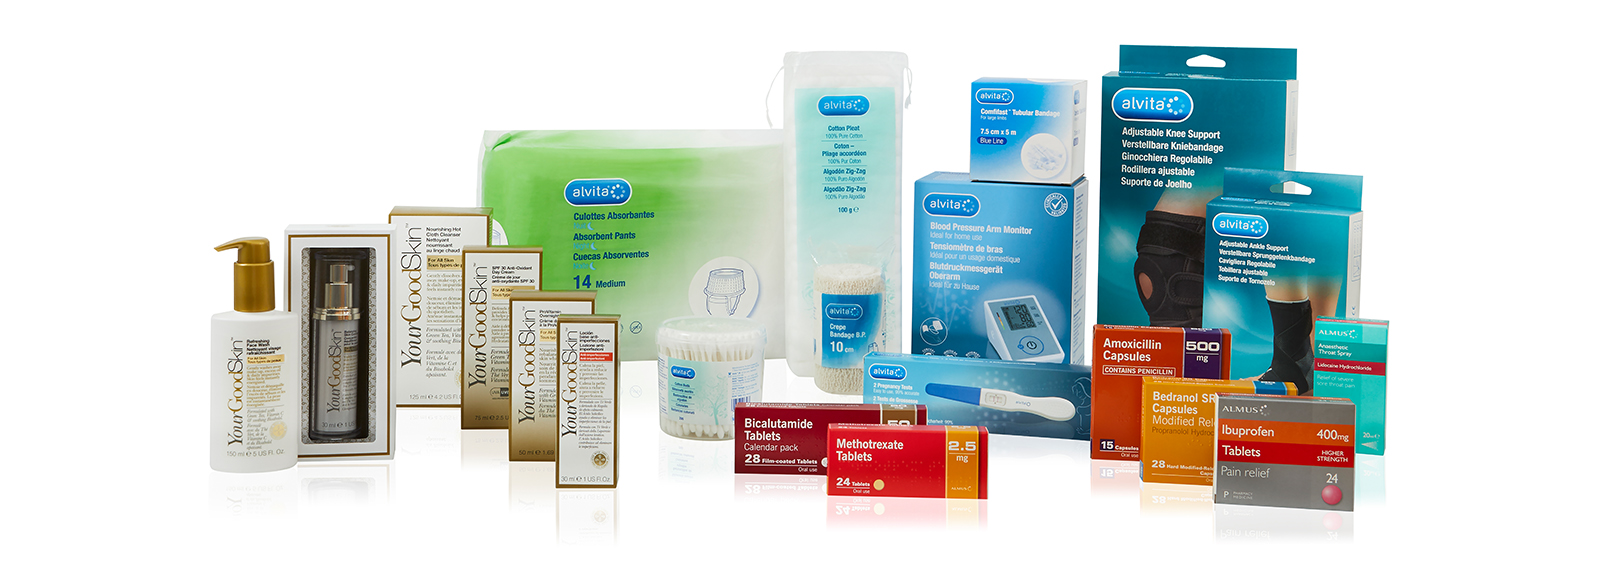 Our exclusive, Pharmacy-only products